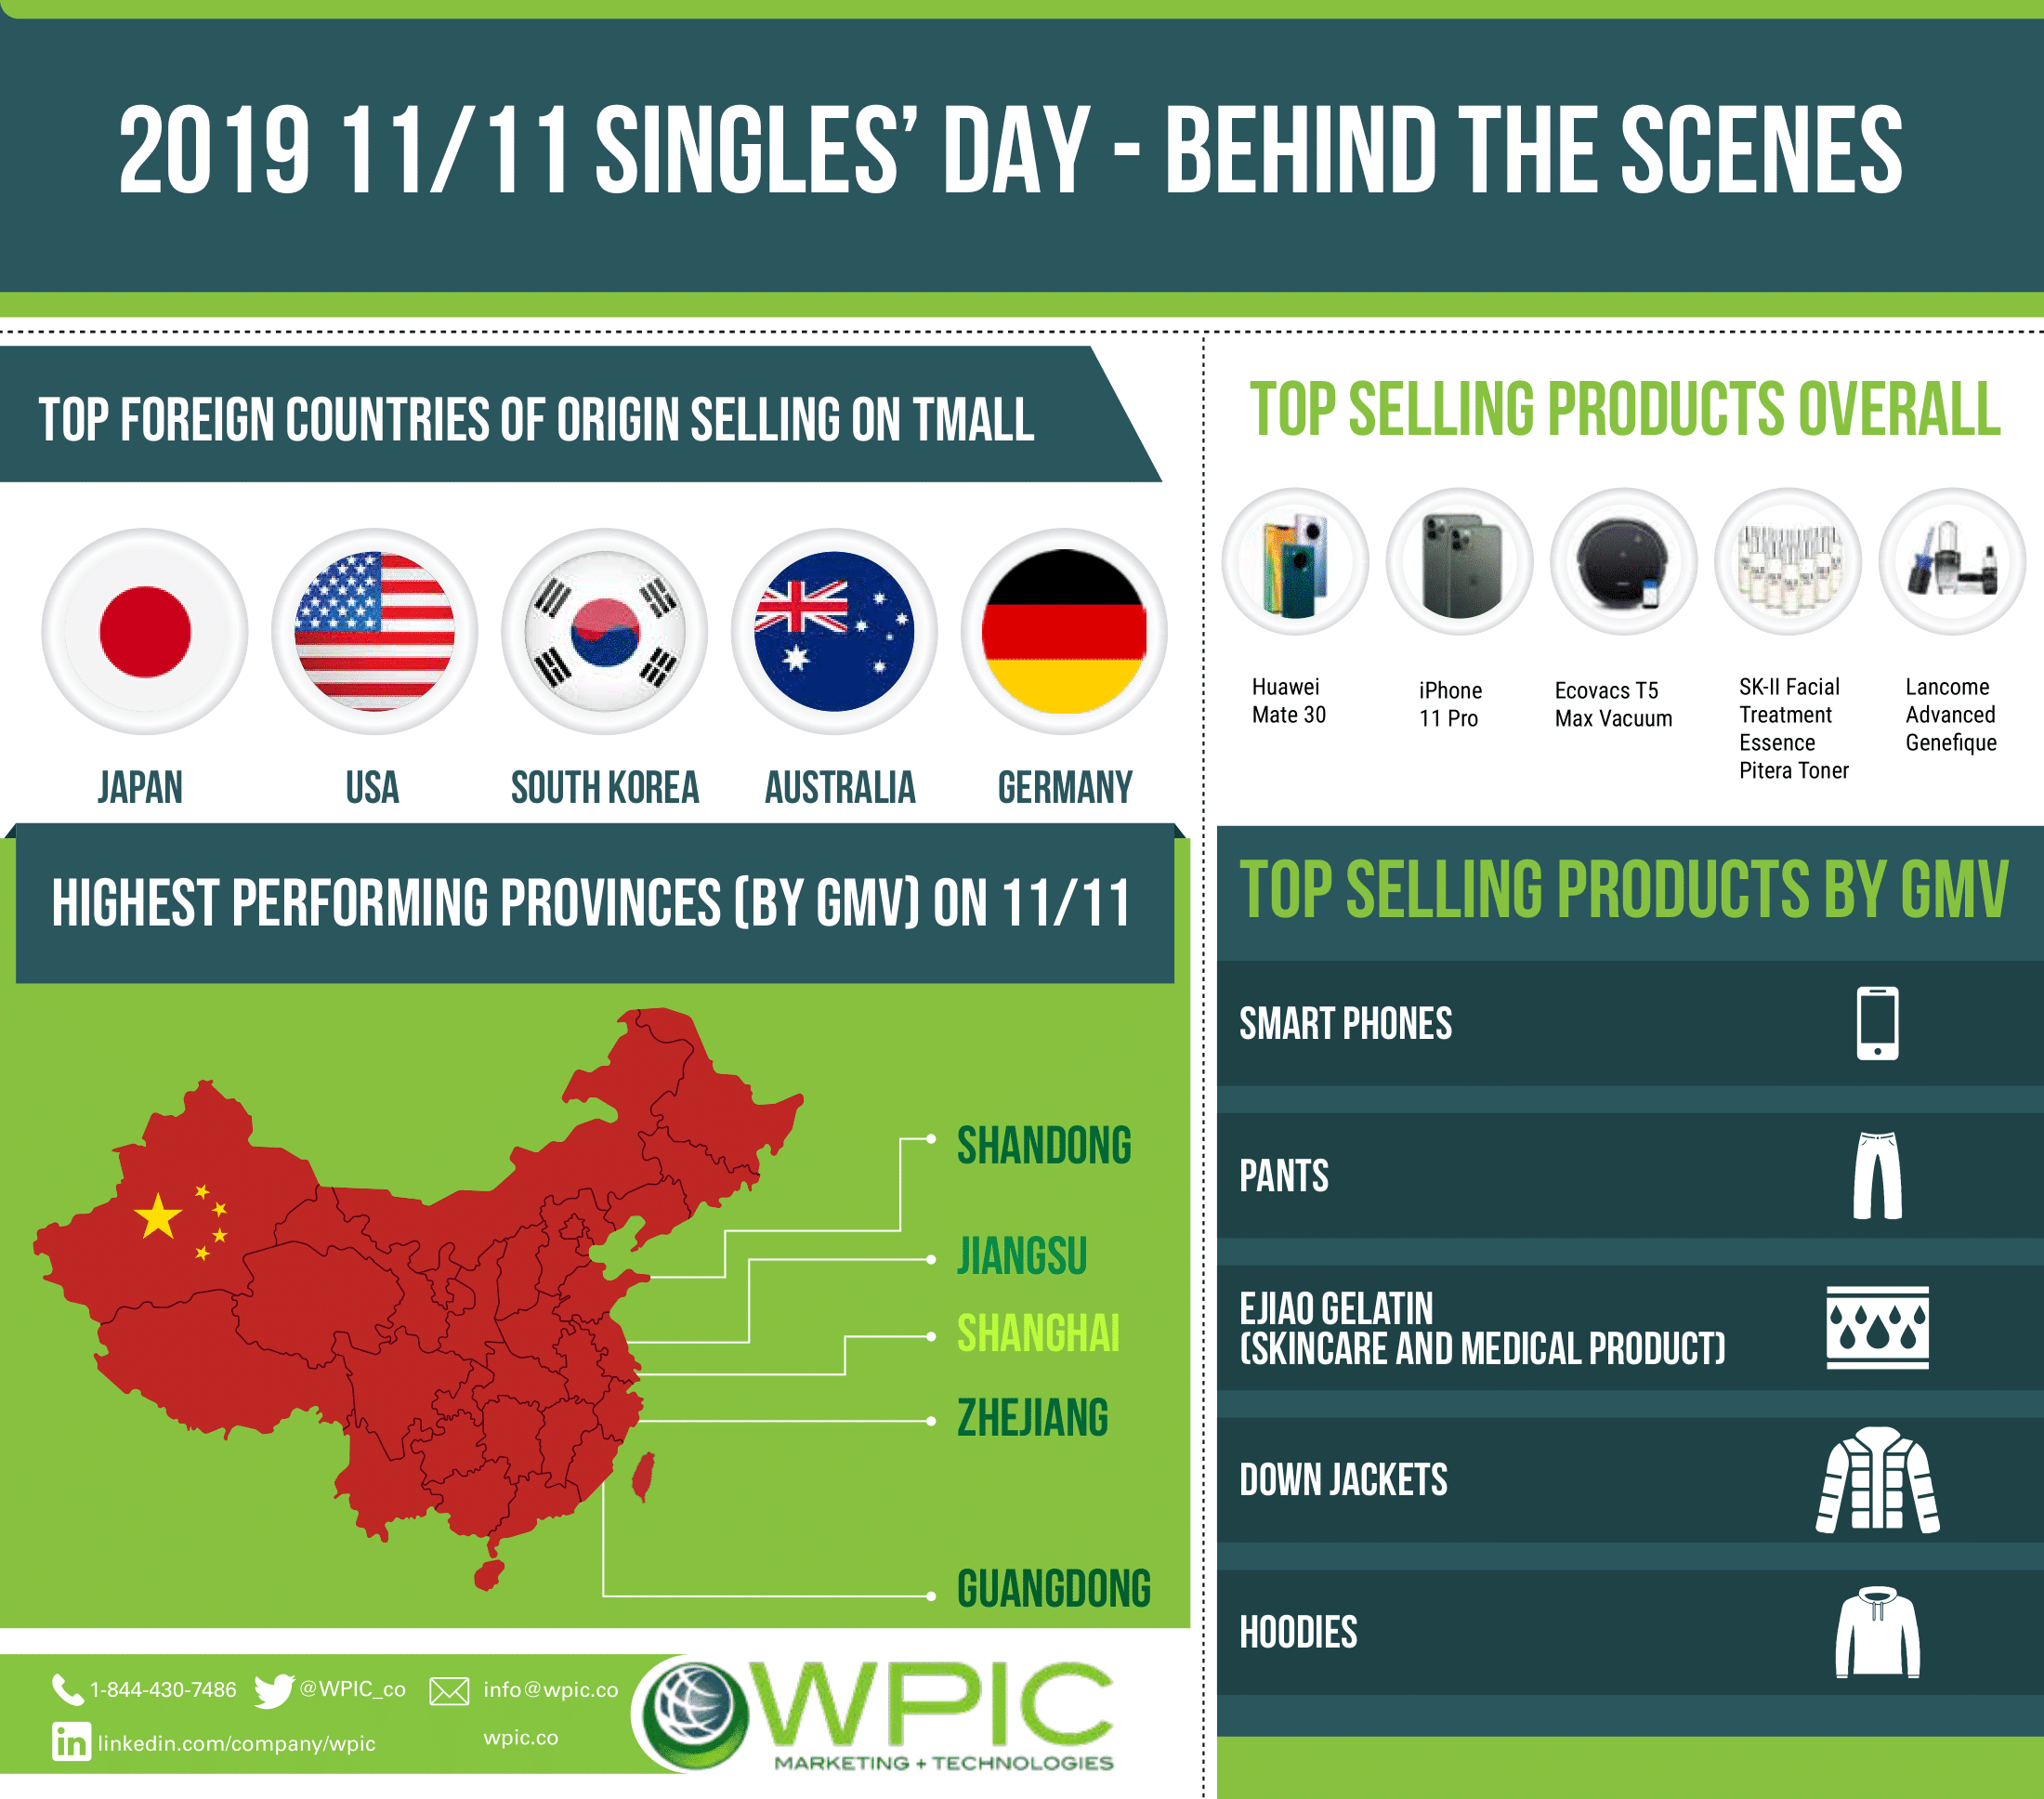 2019 11/11 Singles' Day - Behind the scenes infographic